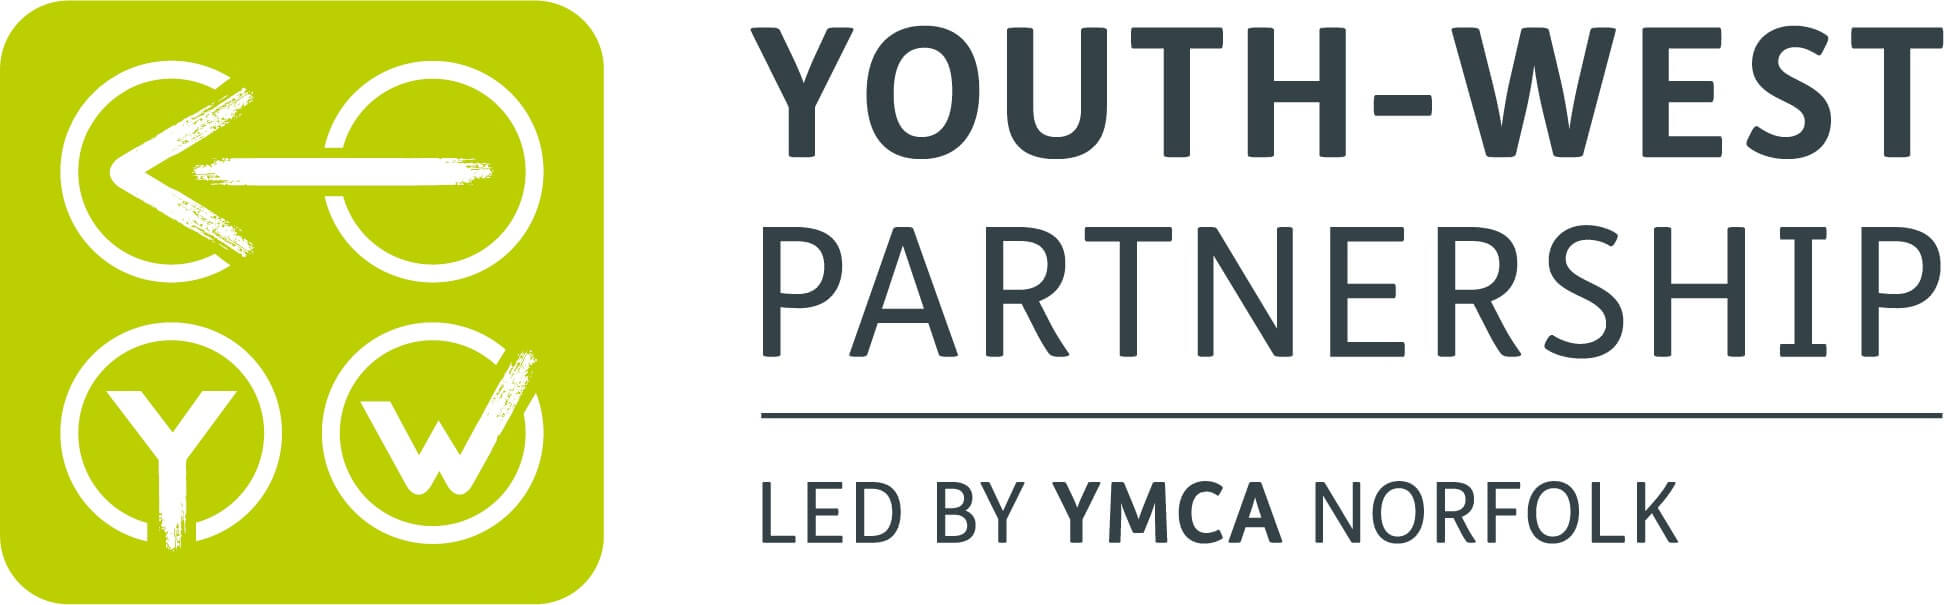 Youth West Partnership Logo - led by YMCA Norfolk